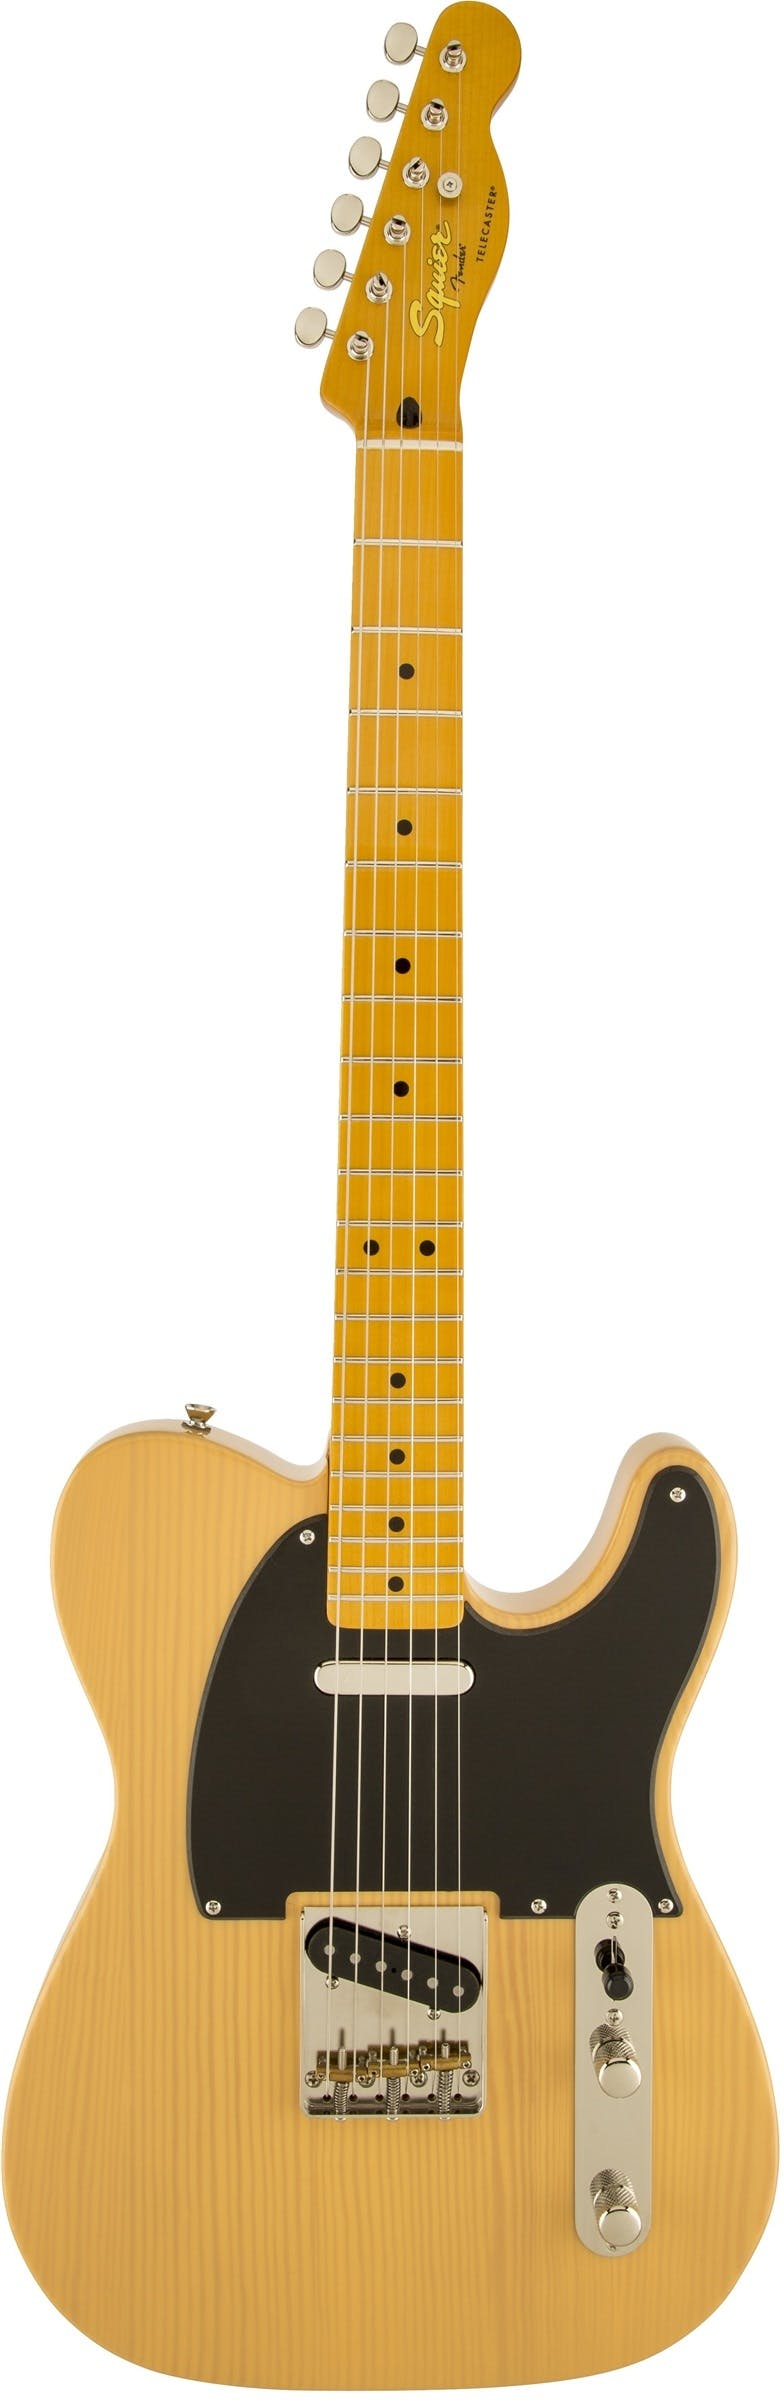 72 Thinline Wiring Diagram Trusted Fender Telecaster American Vintage Best 2018 Color Standards